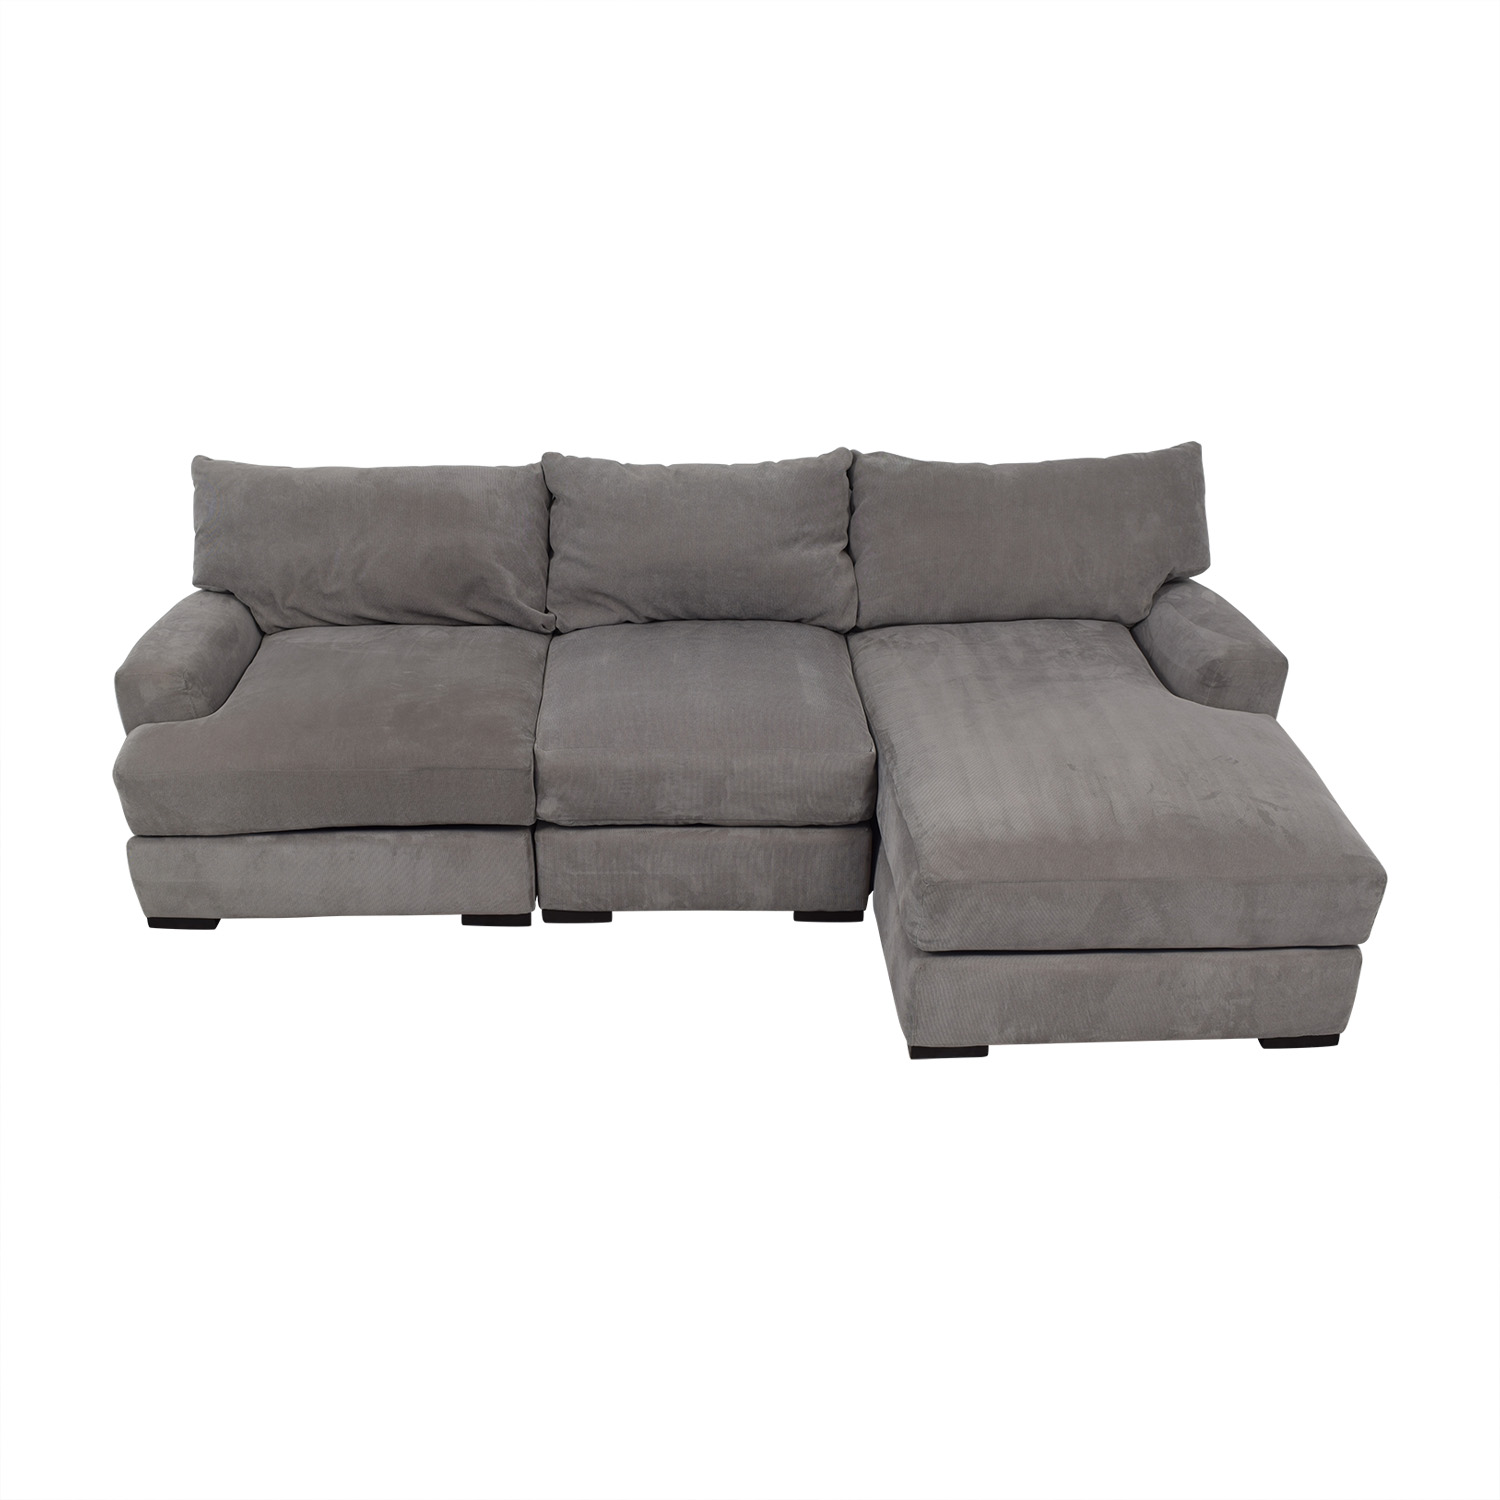 buy Macy's Rhyder Sectional Macy's Sectionals